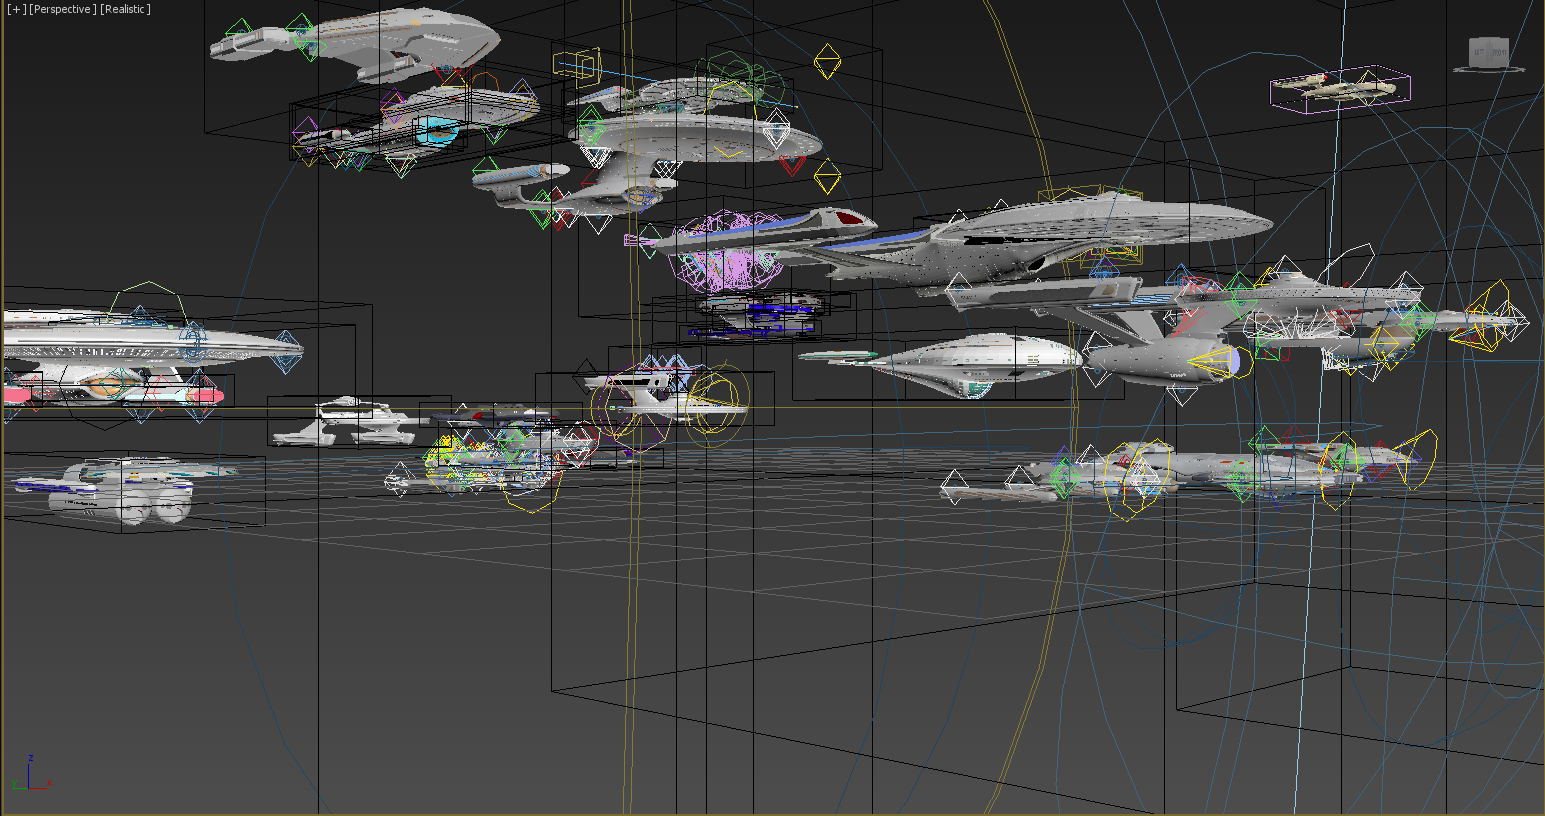 Star trek online starships models 3d artists garrys mod maybe i will when all the sto models are done being worked on do a straight up comparisoncontrast video publicscrutiny Gallery